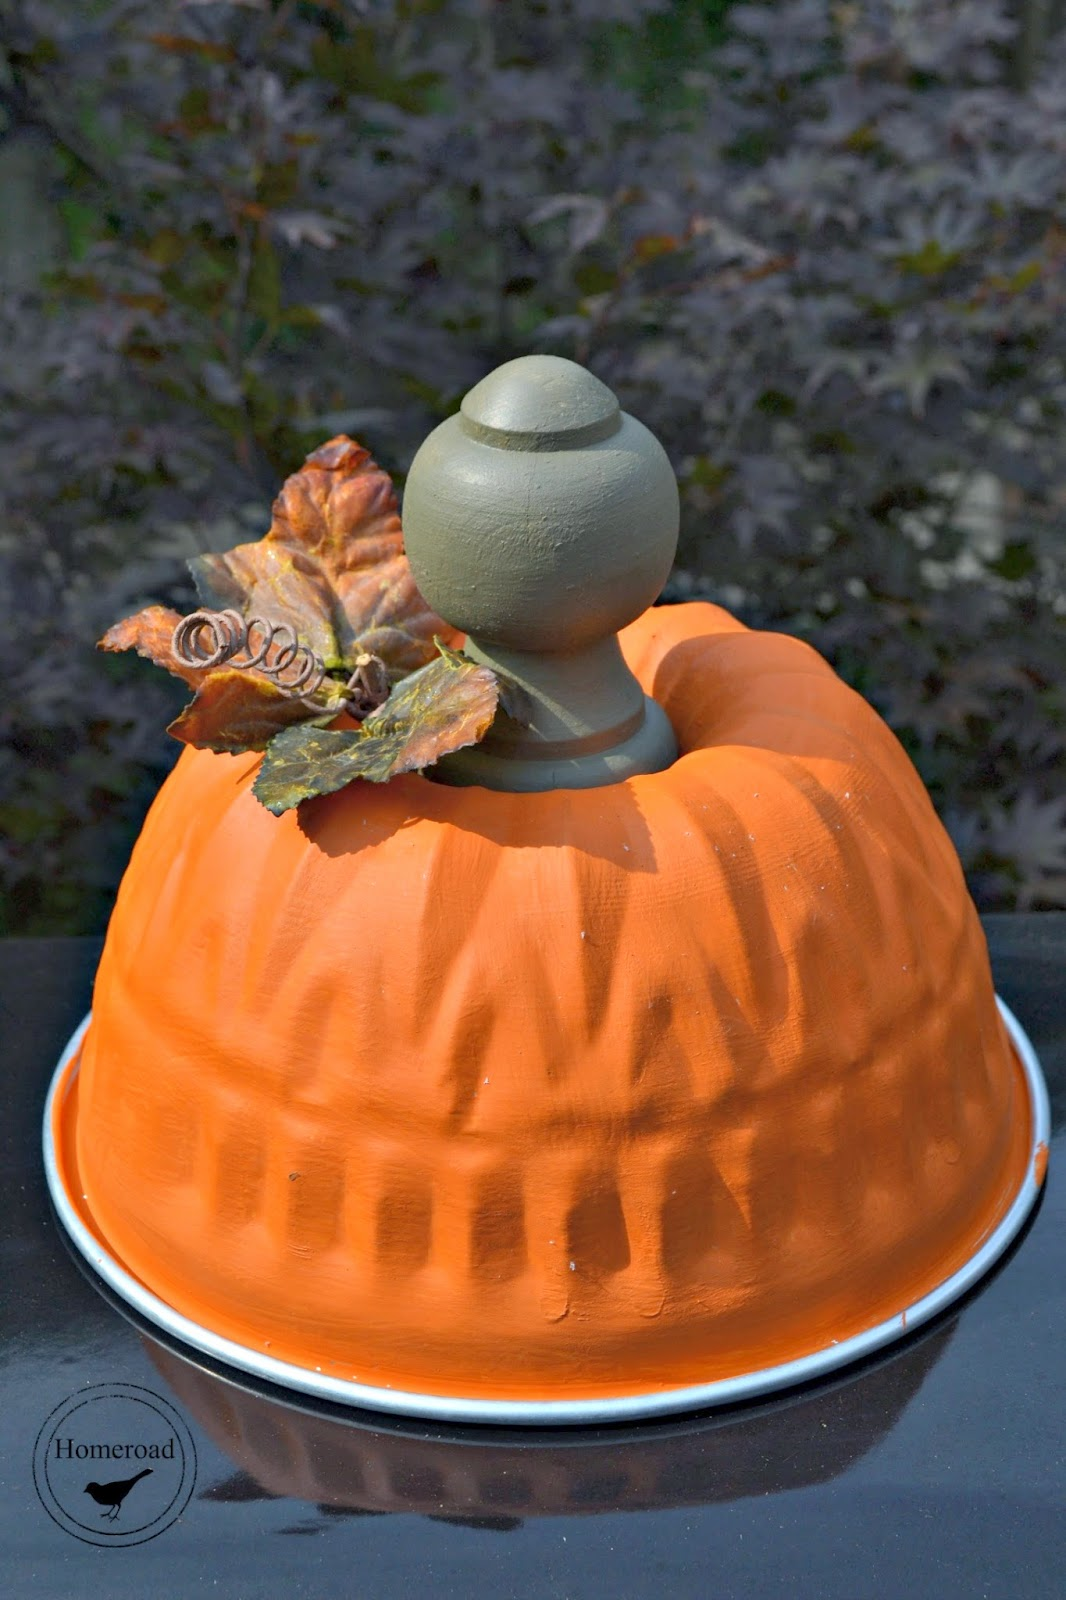 bundt-pan-pumpkin www.homeroad.net